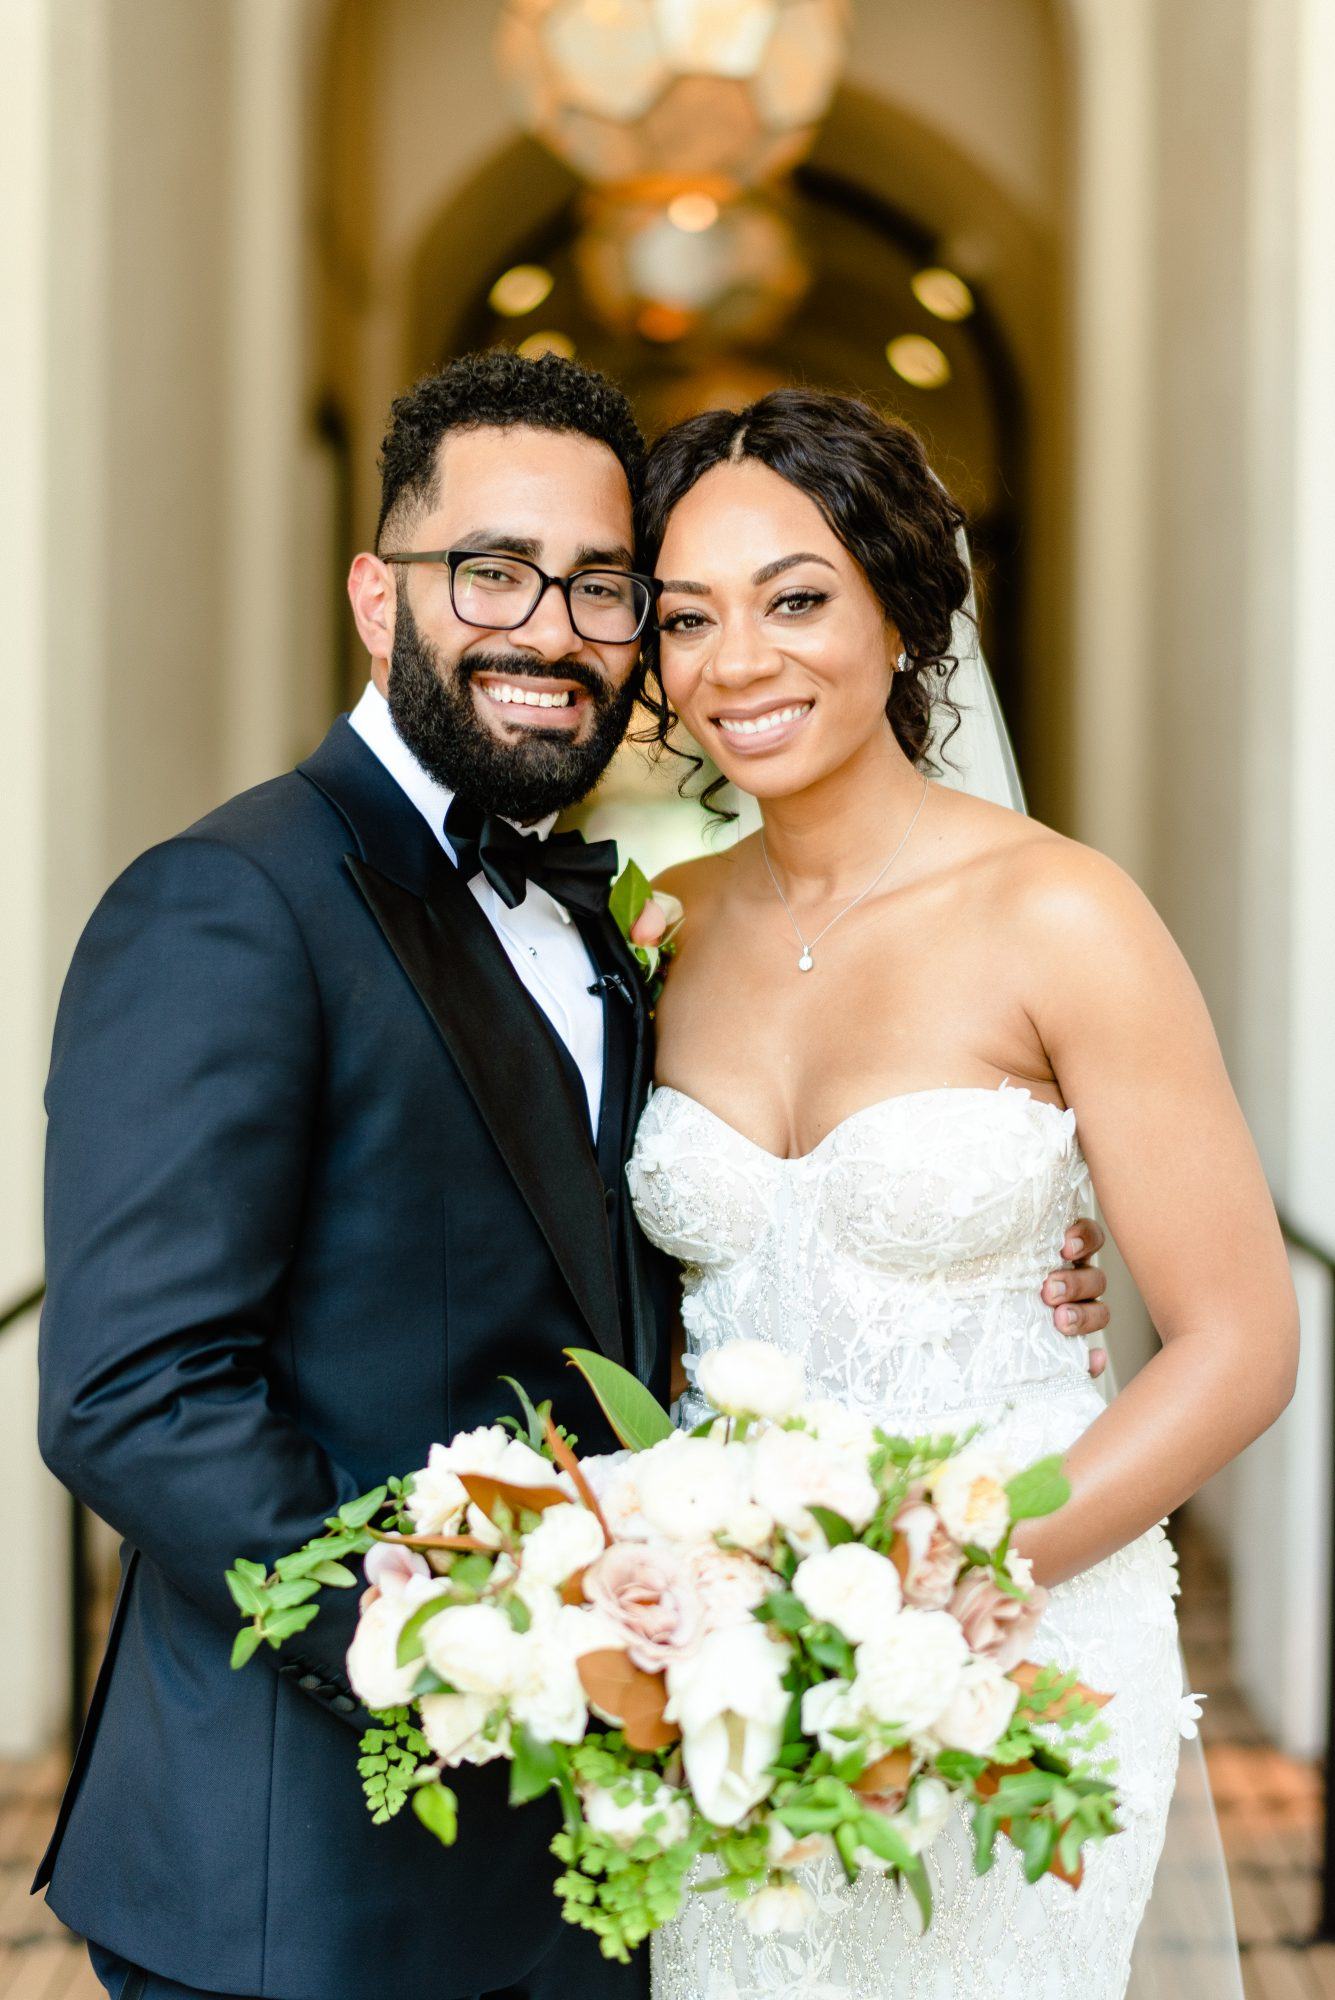 """This Couple Used the New Orleans Mantra """"Laissez Les Bon Temps Rouler"""" as a Guide When Planning Their Los Angeles Wedding"""